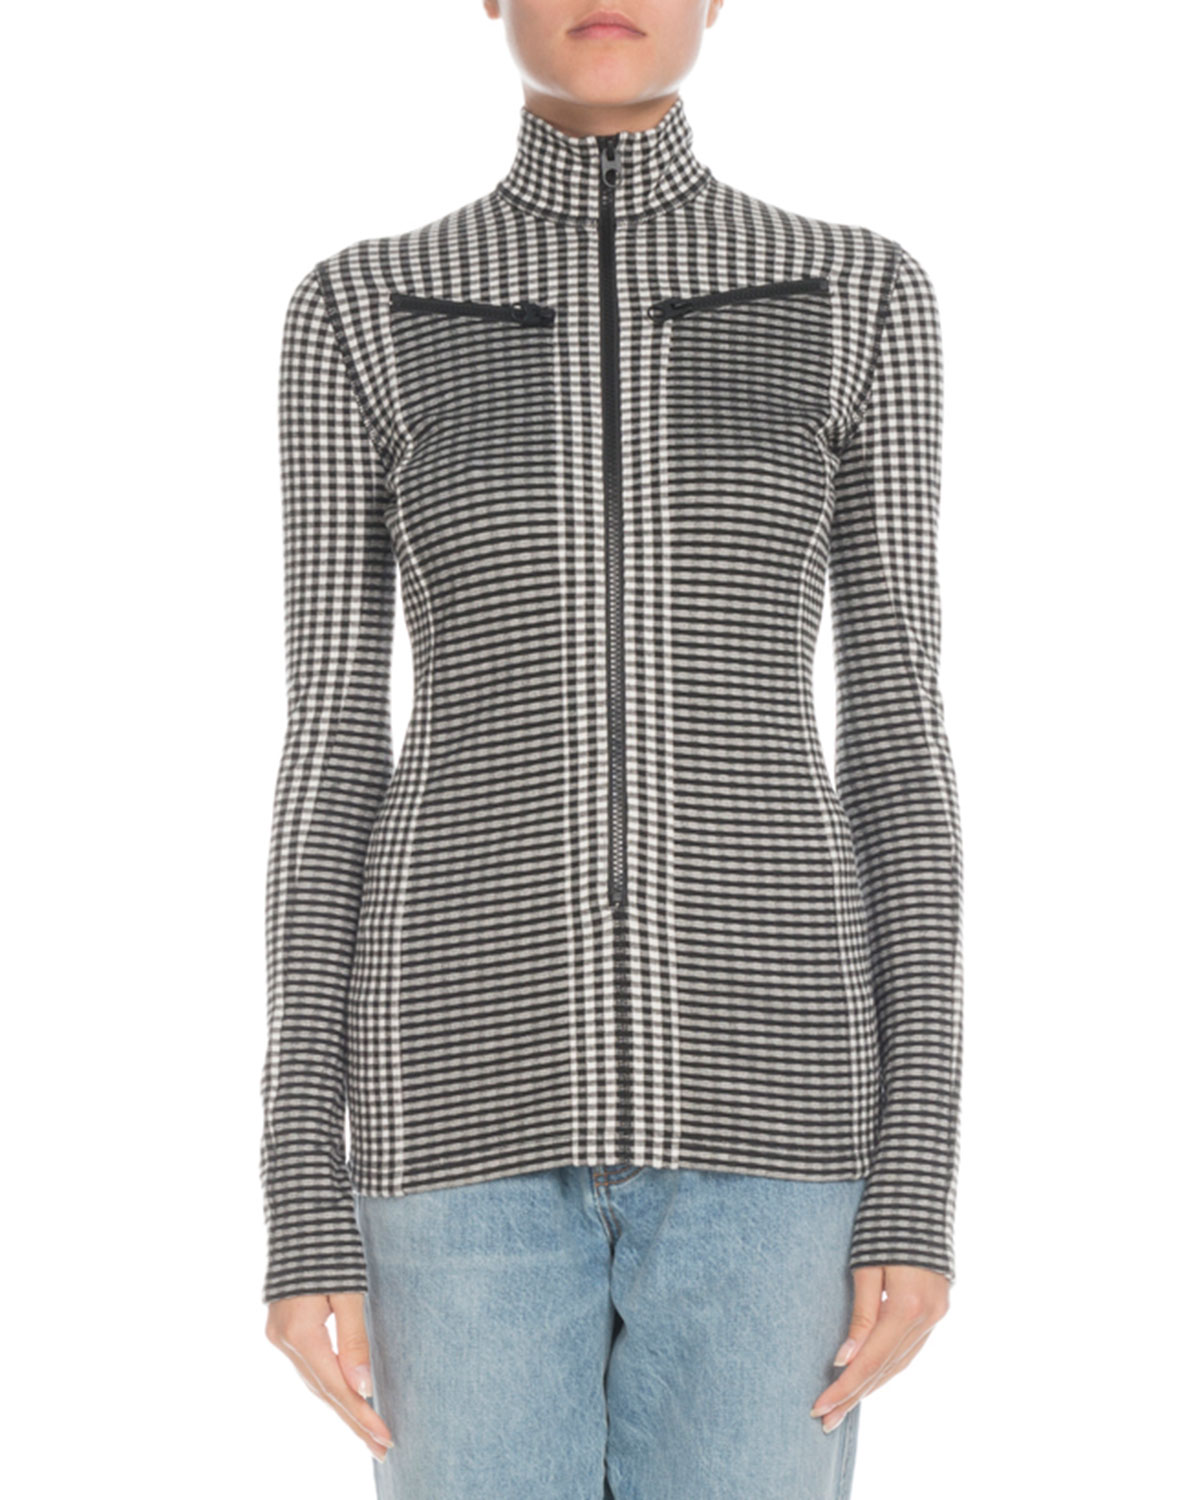 PSWL Check Turtleneck Zip-Front Top in Black/White